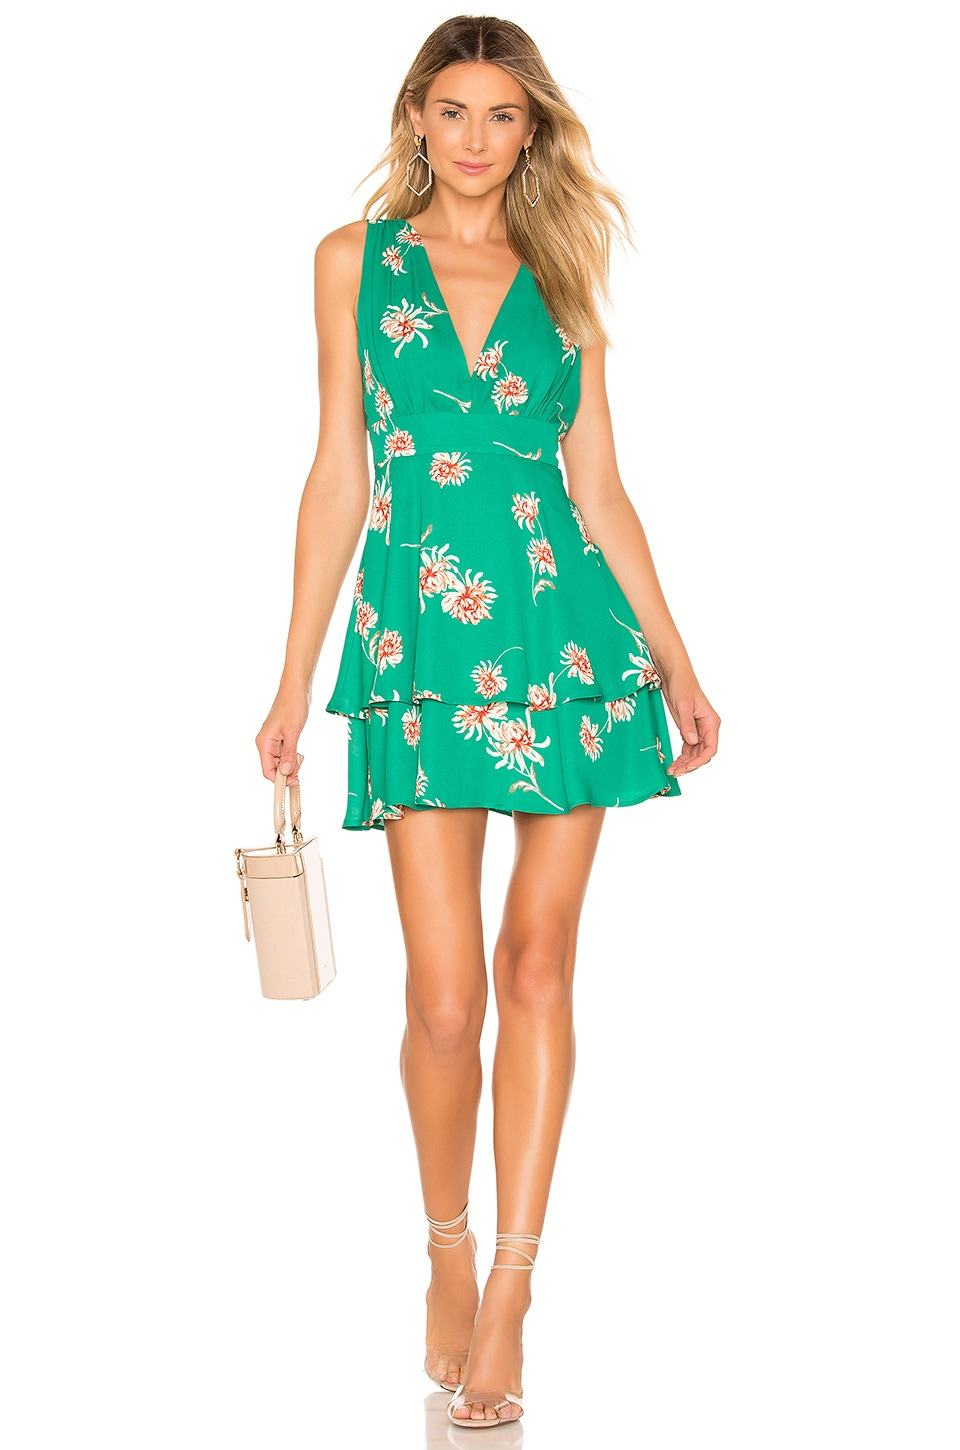 BB Dakota Garden Strolls Dress in Pepper Green